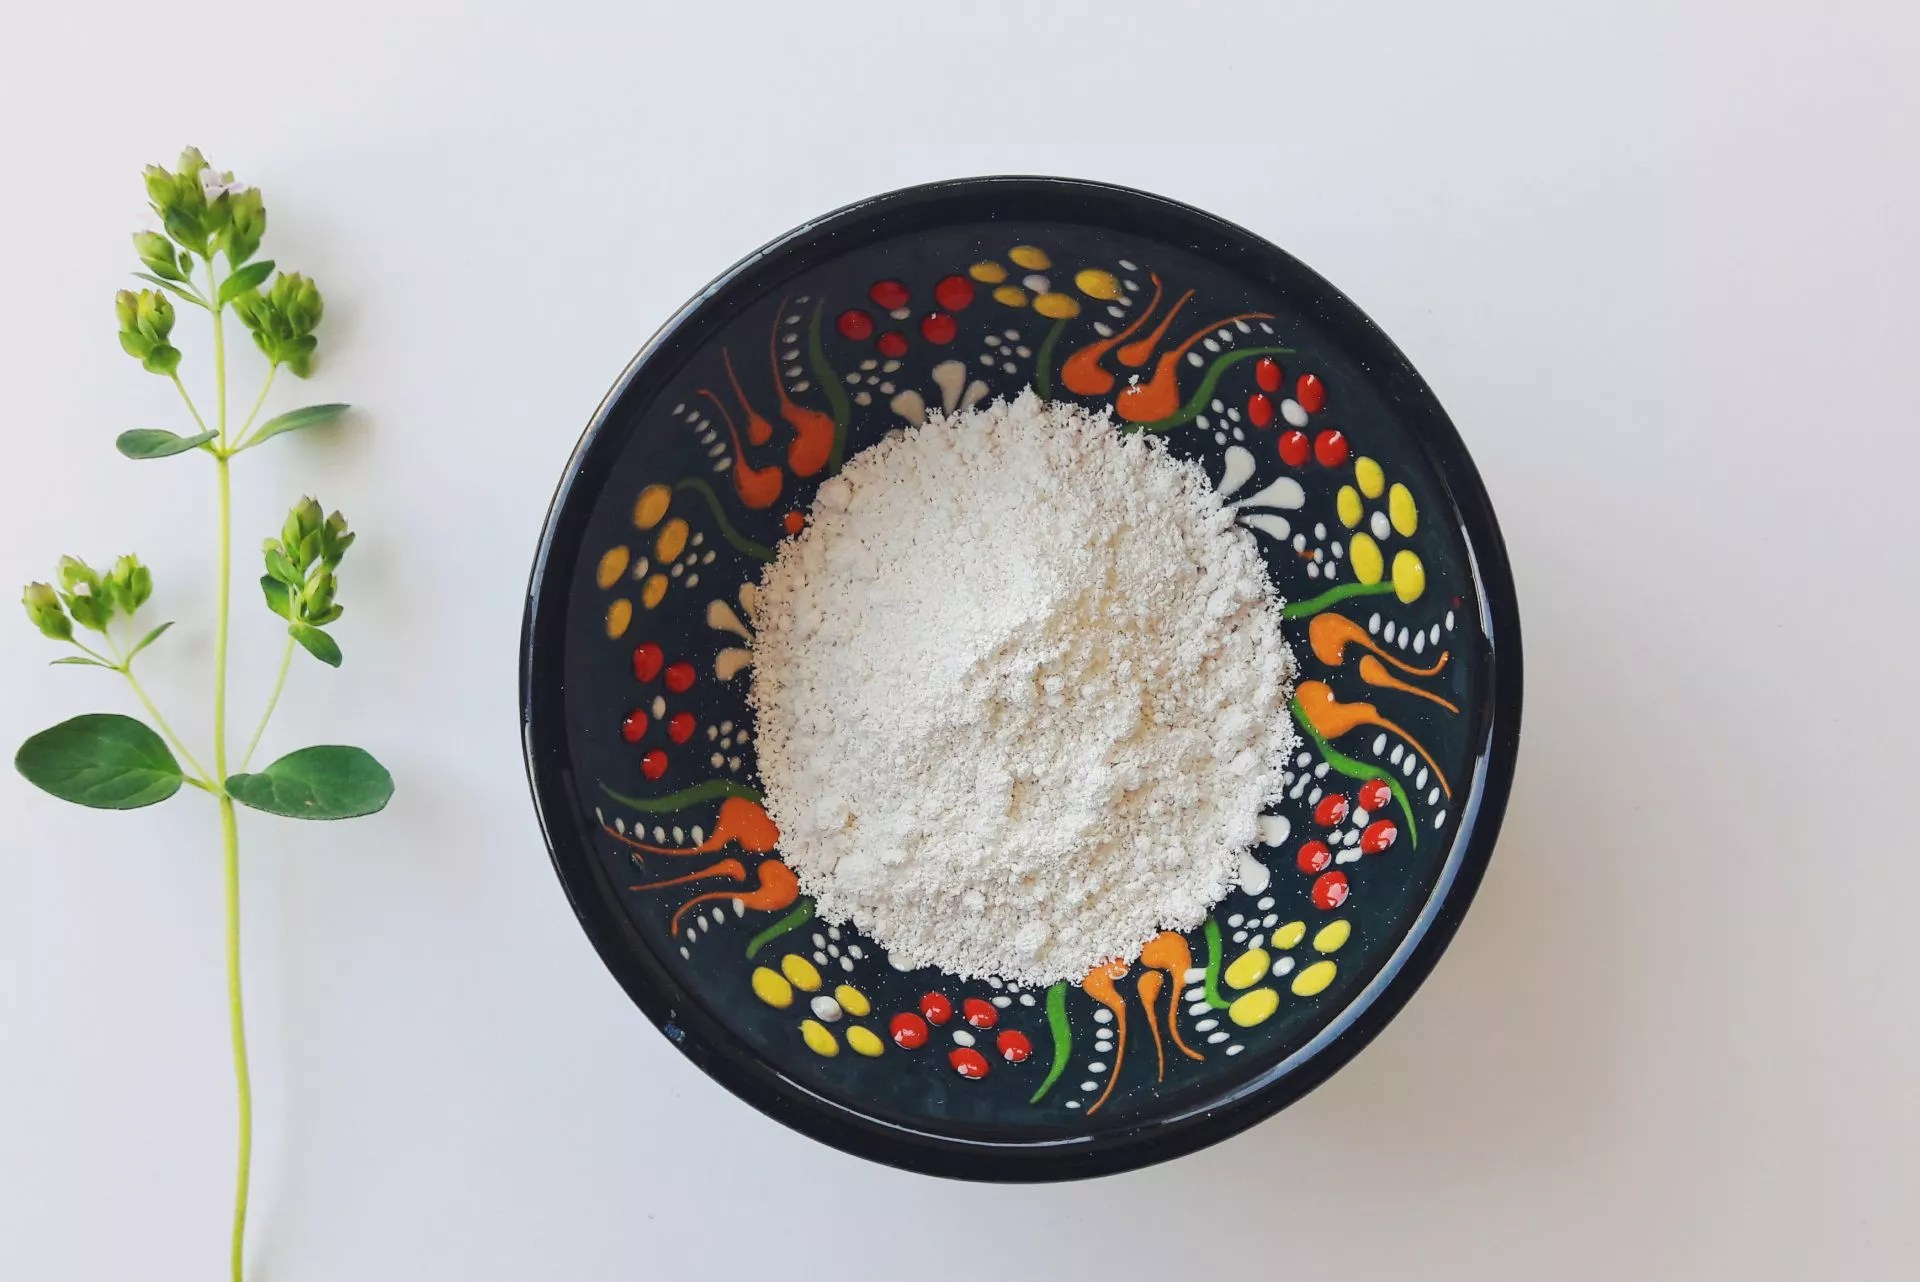 China Clay Suppliers White Kaolin Clay Skin Benefits Solution For Sensitive Skin